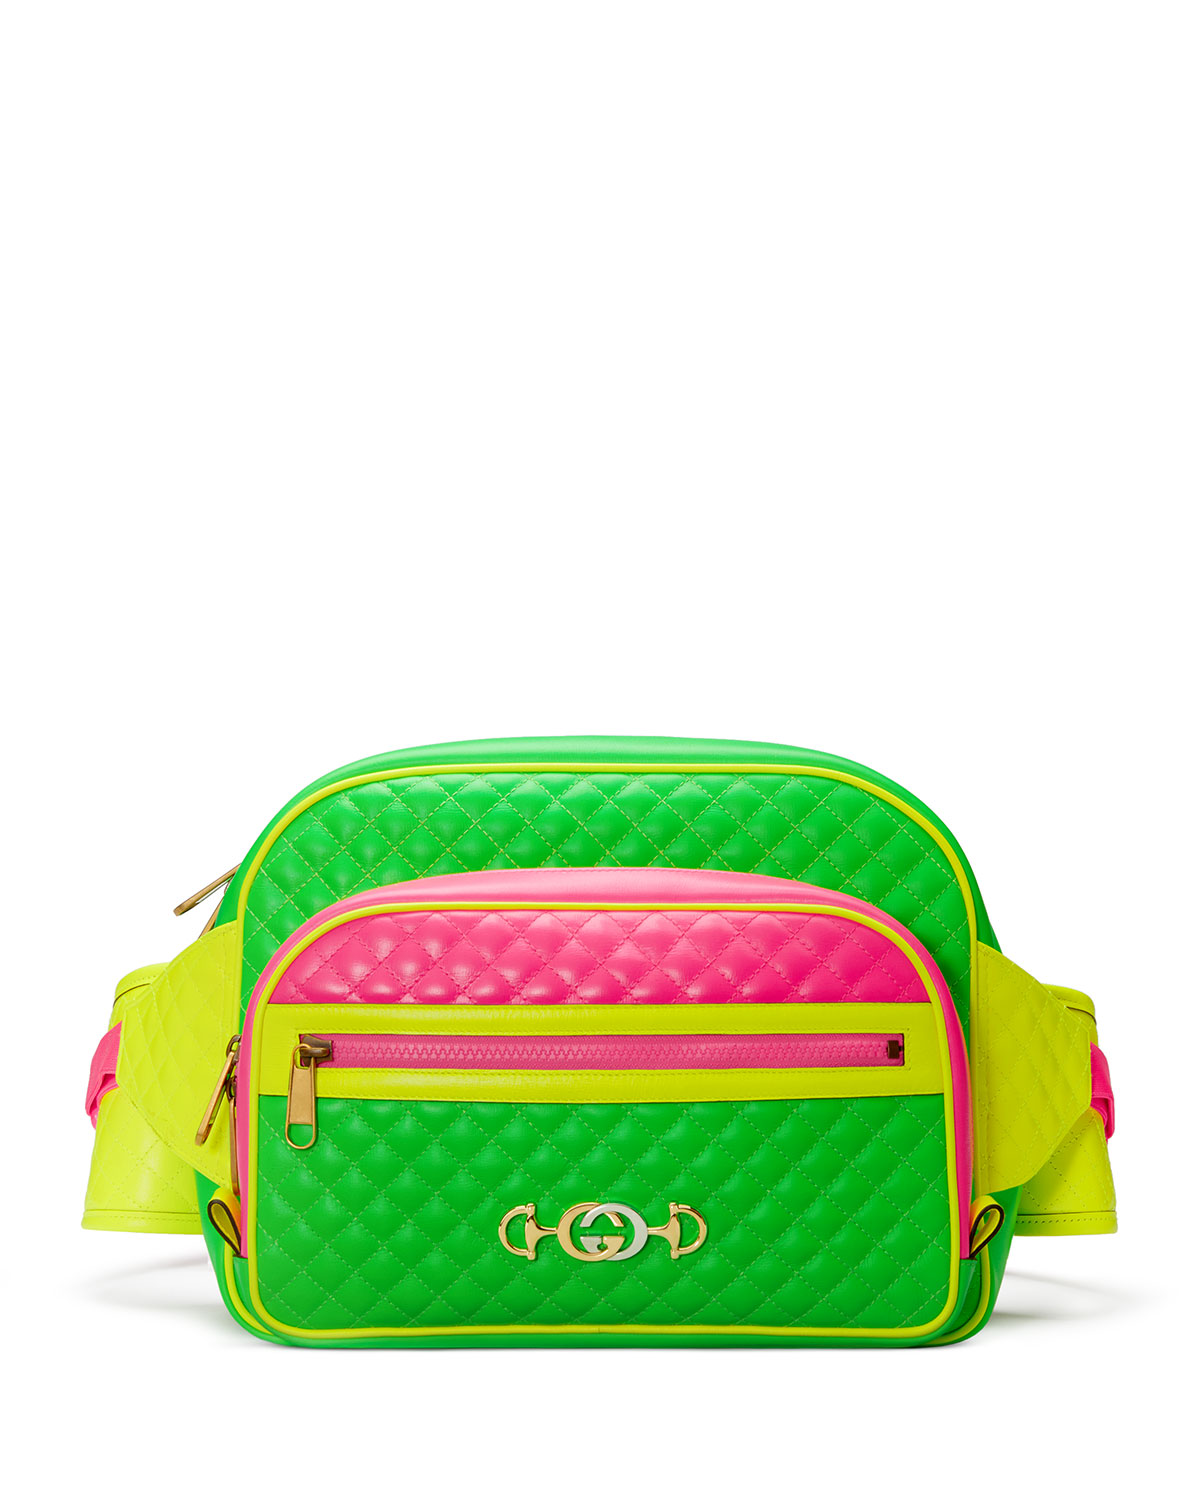 9d45bb1897d3ee Gucci Men's Quilted Neon Leather Belt Bag/Fanny Pack | Neiman Marcus